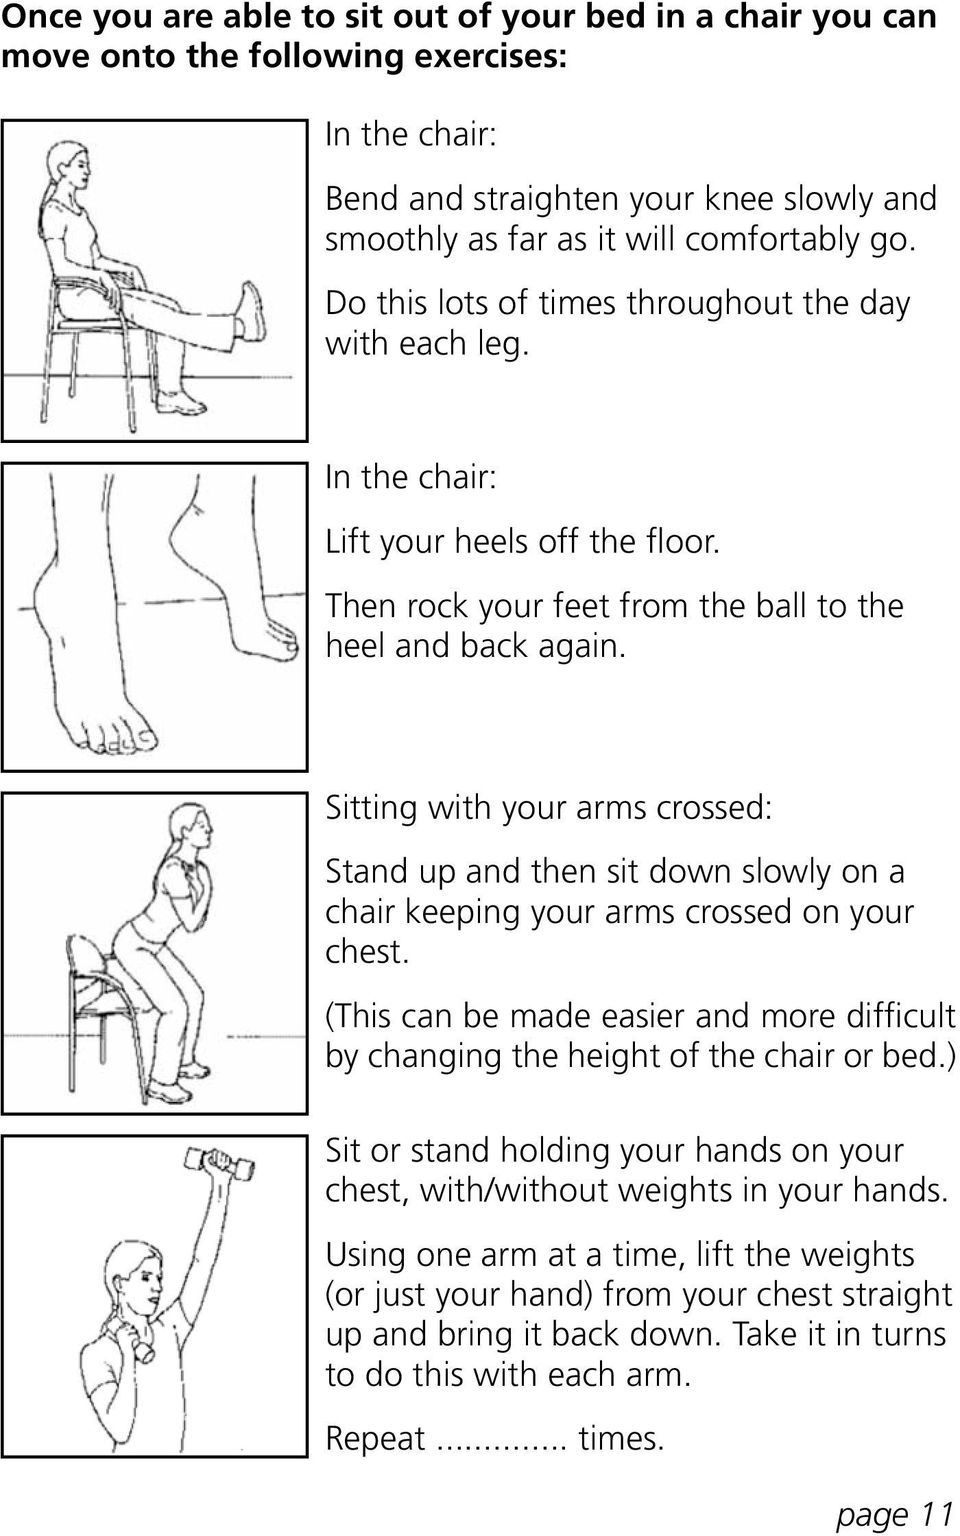 Sitting with your arms crossed: Stand up and then sit down slowly on a chair keeping your arms crossed on your chest.